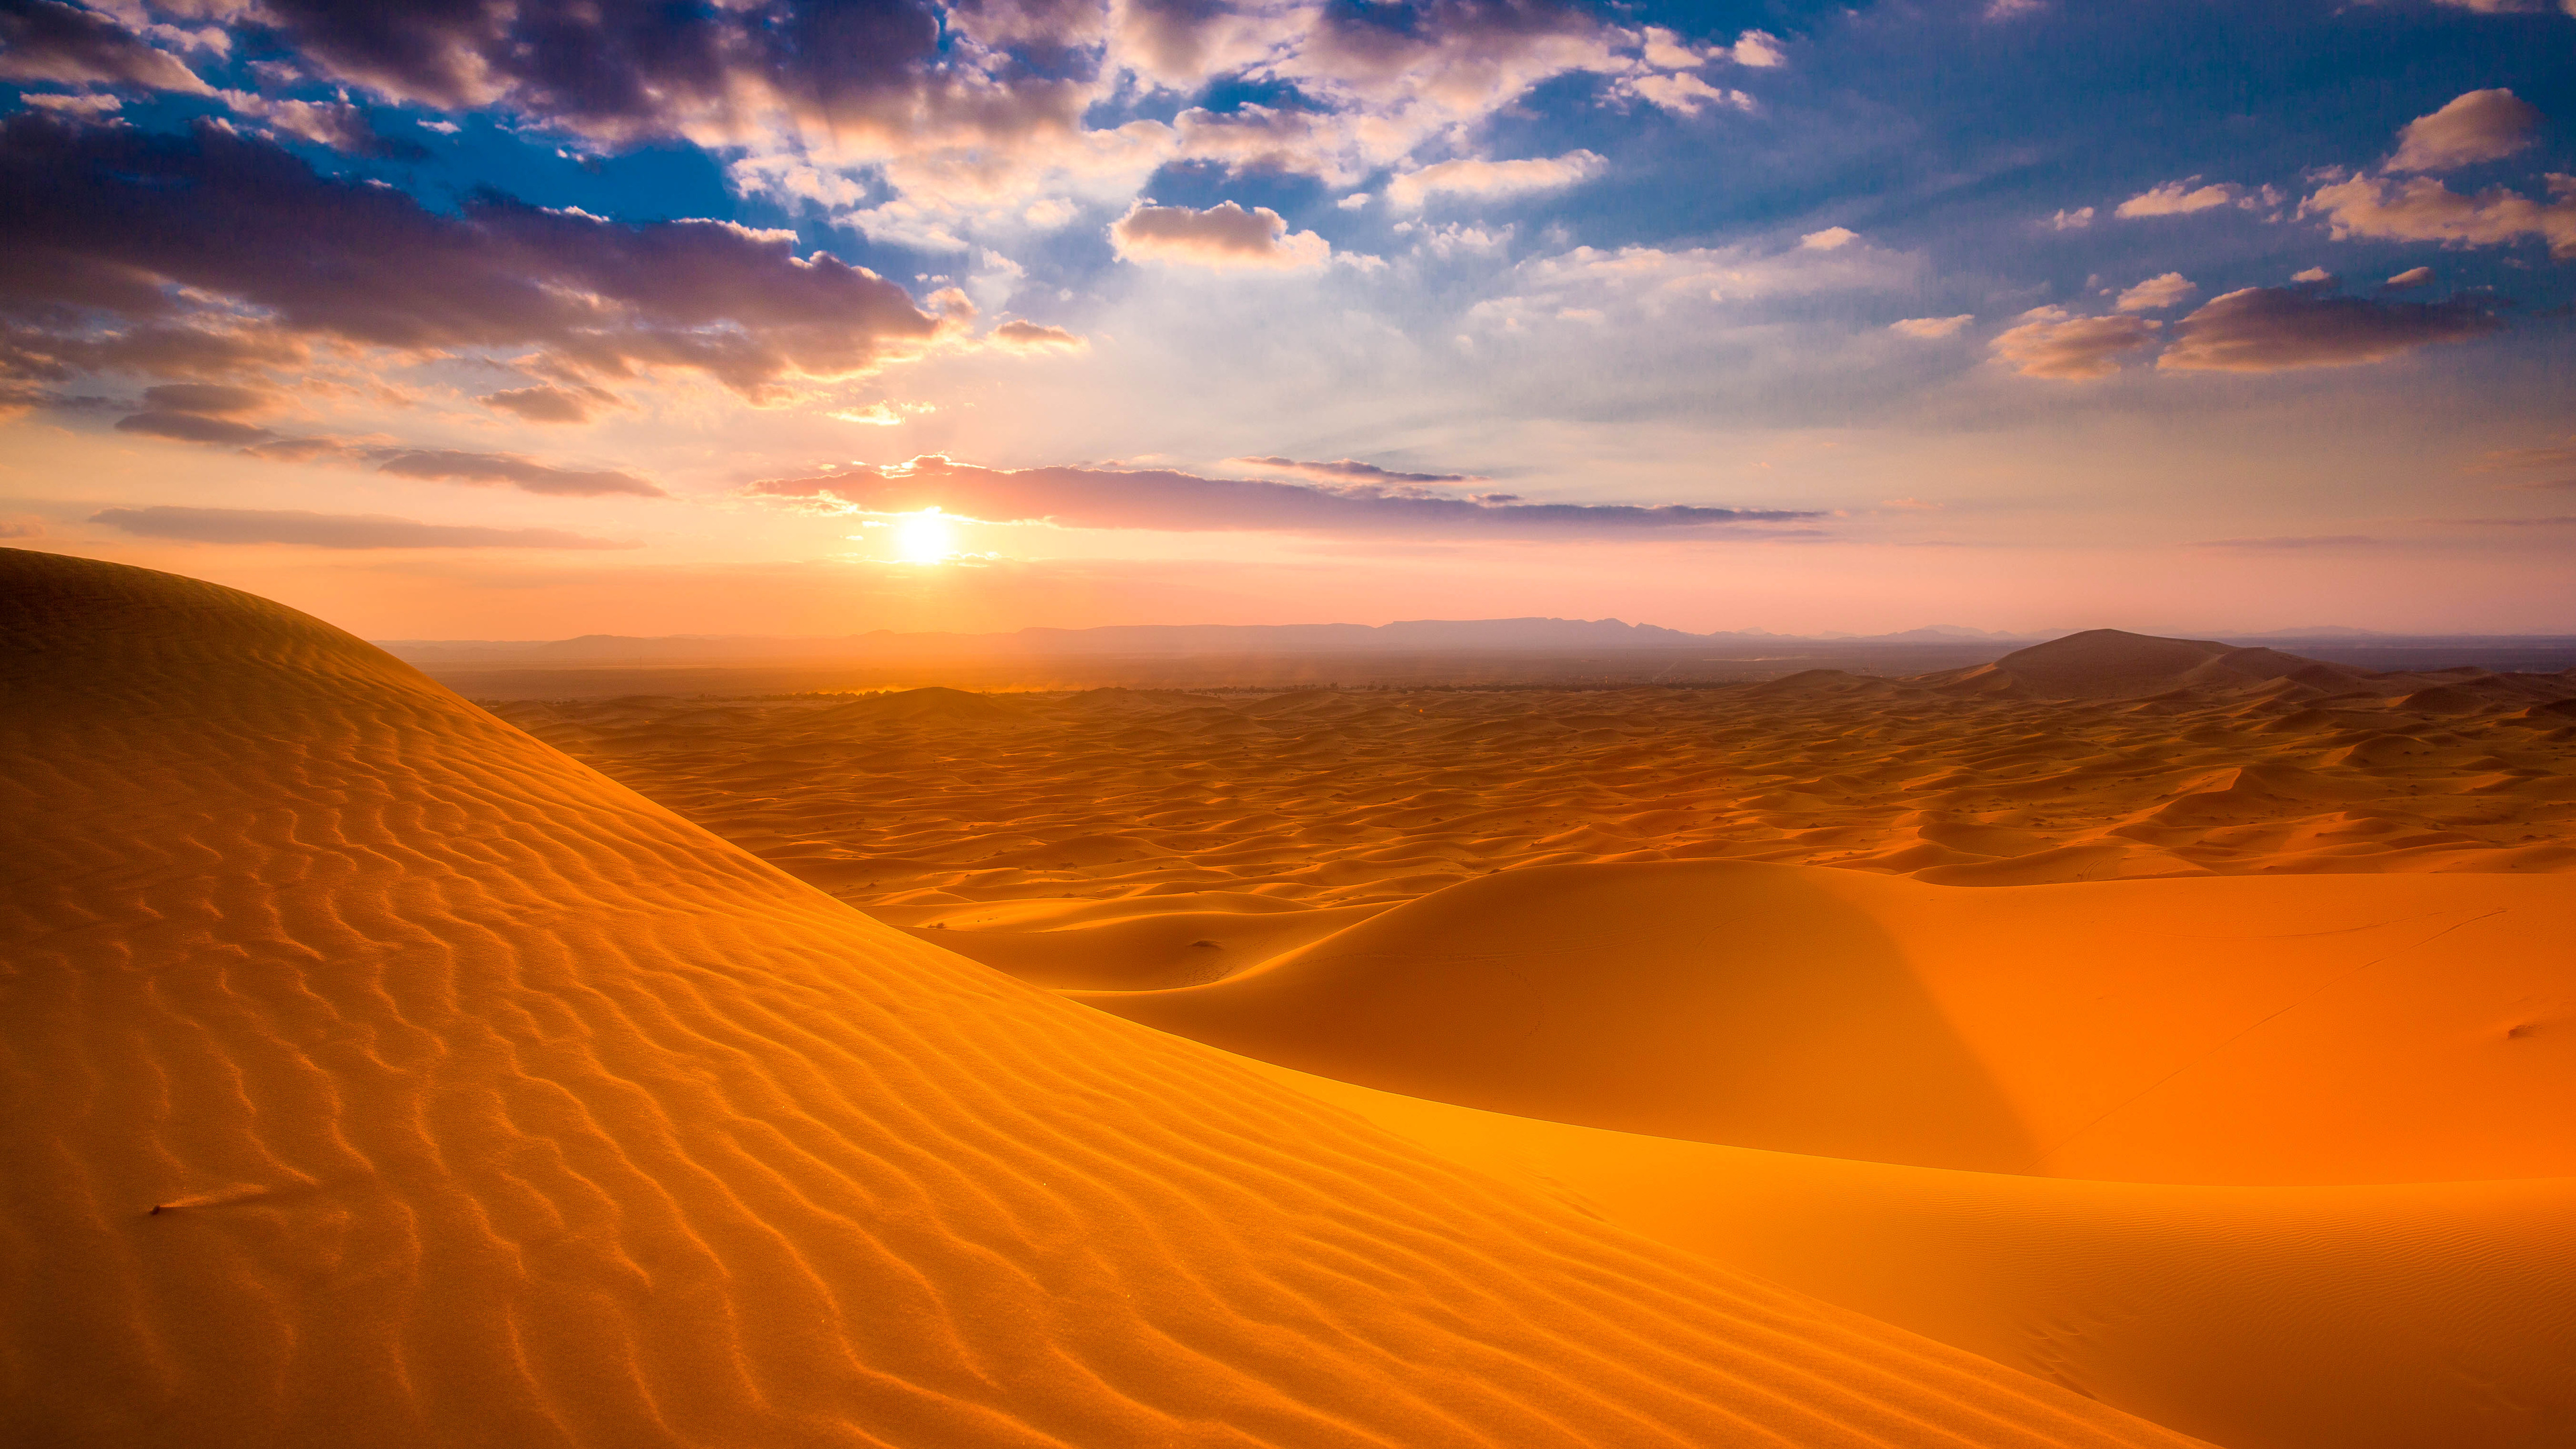 Sahara Desert Sunset Wallpapers